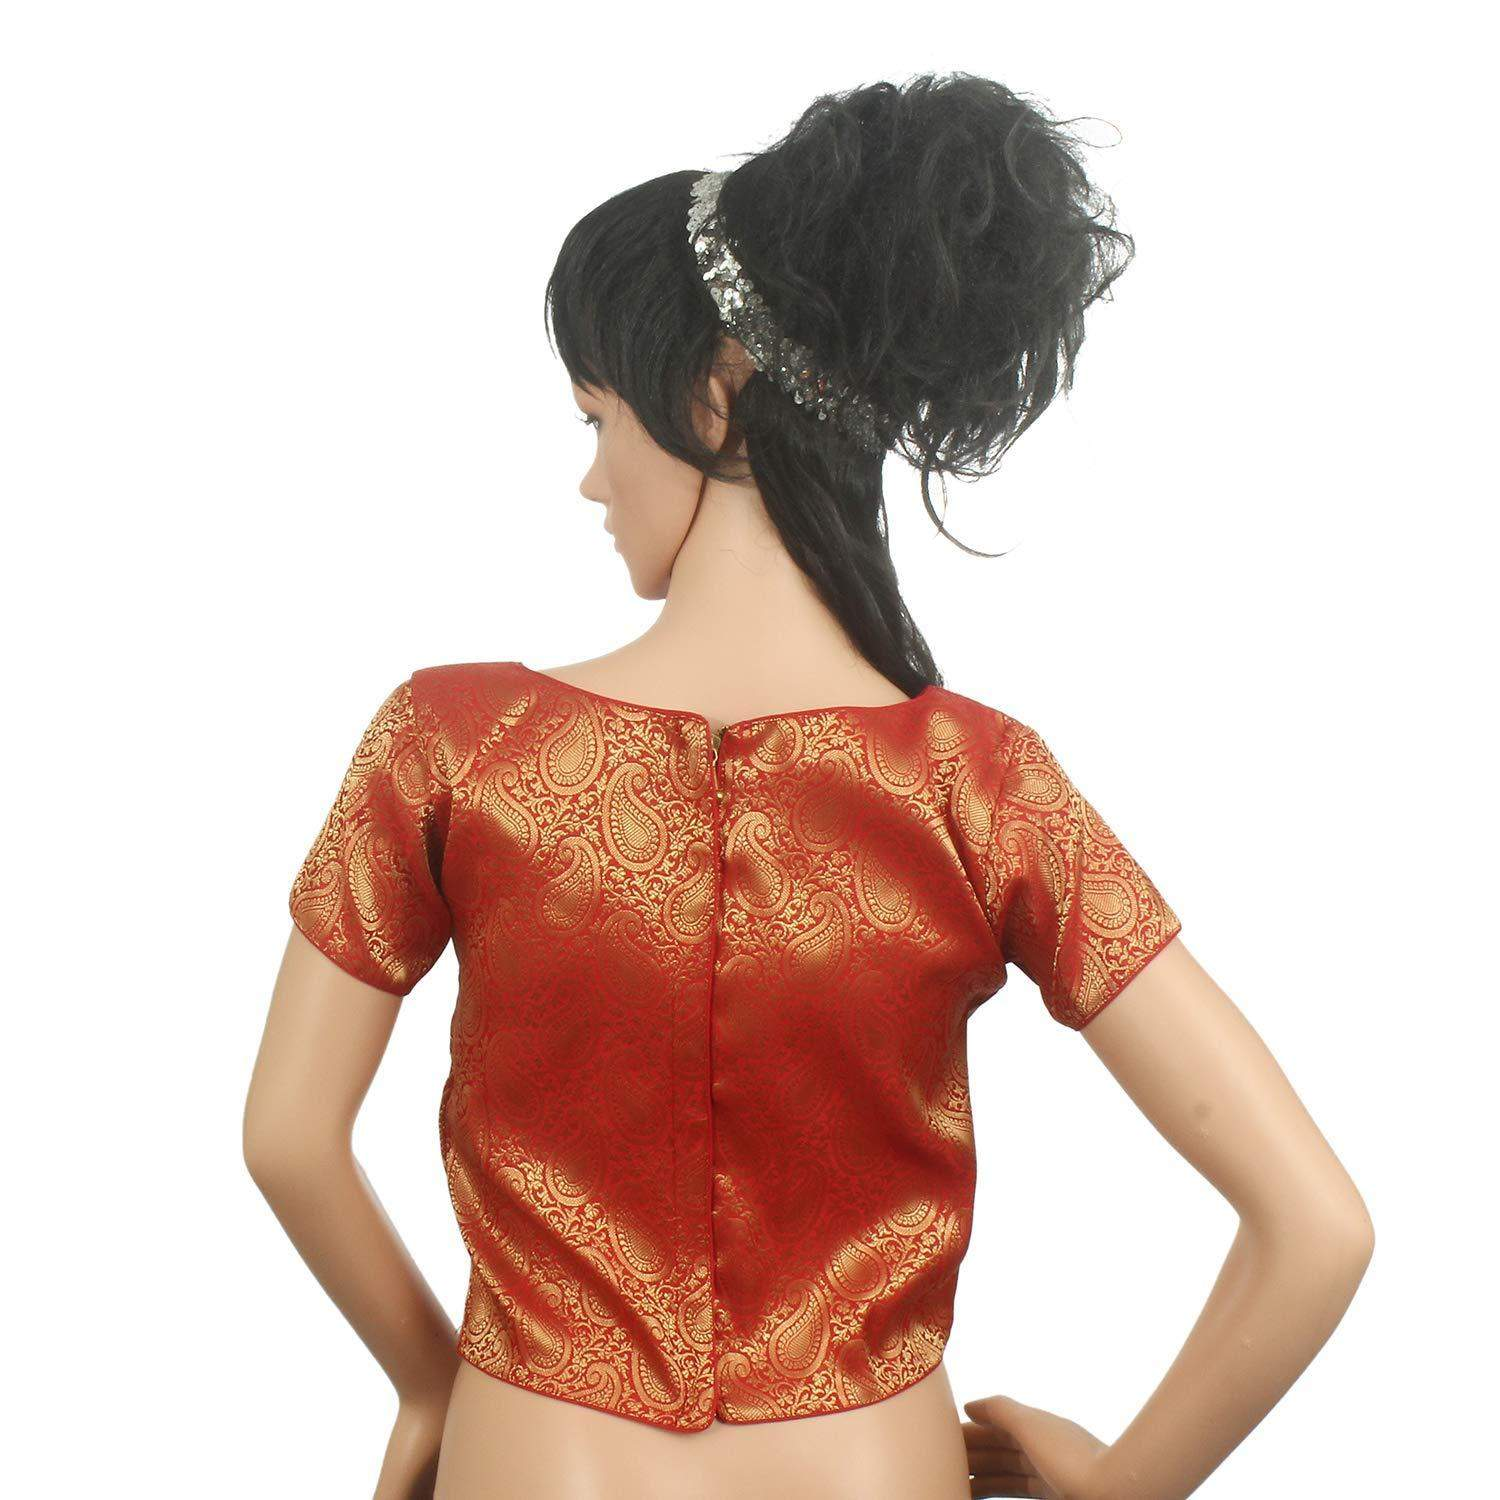 Readymade Designer Saree Blouse For Women's Red - Bagaholics Gift